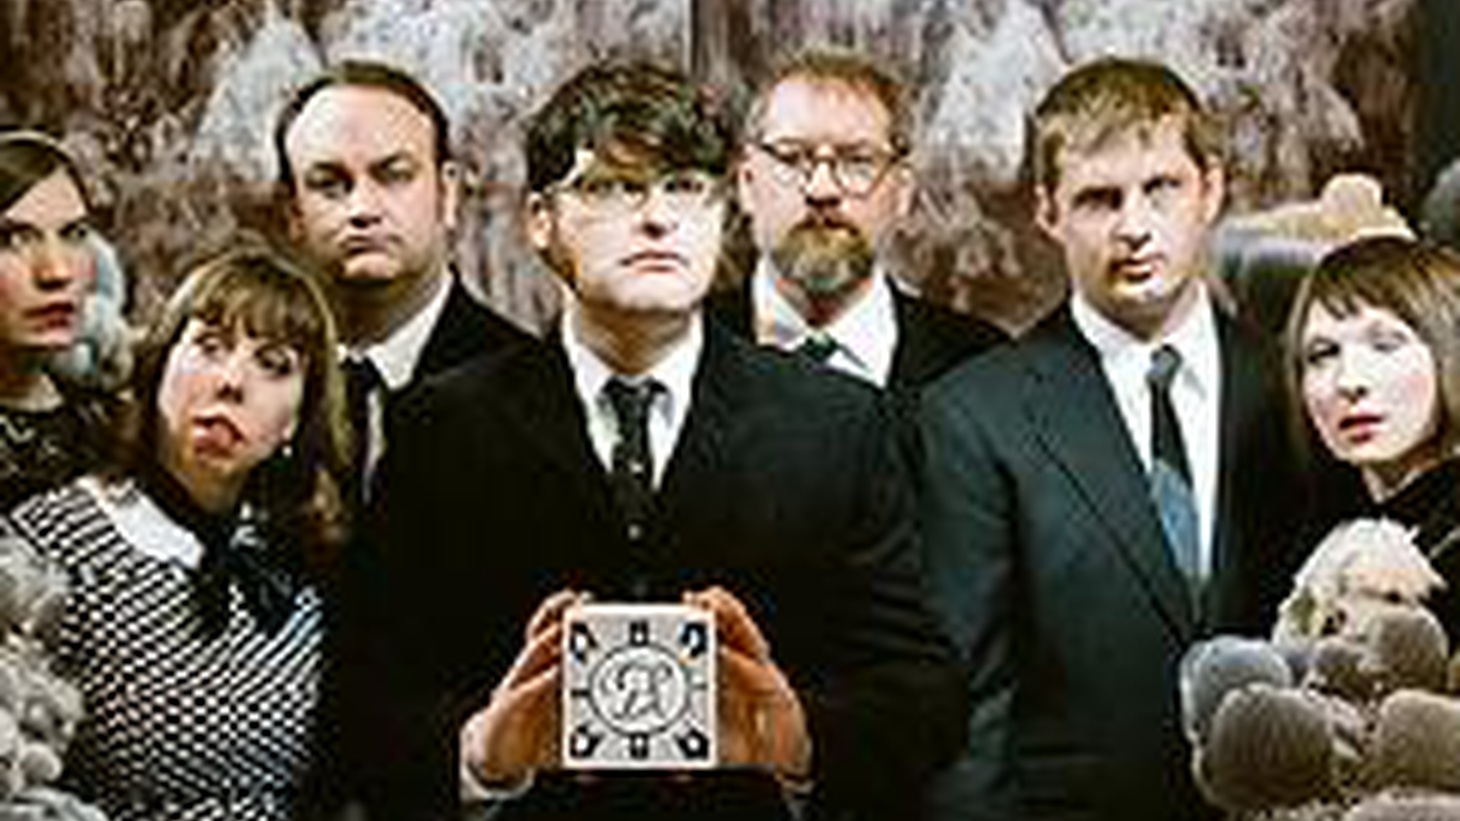 The Decemberists return to perform new songs on Morning Becomes Eclectic at 11:15am.